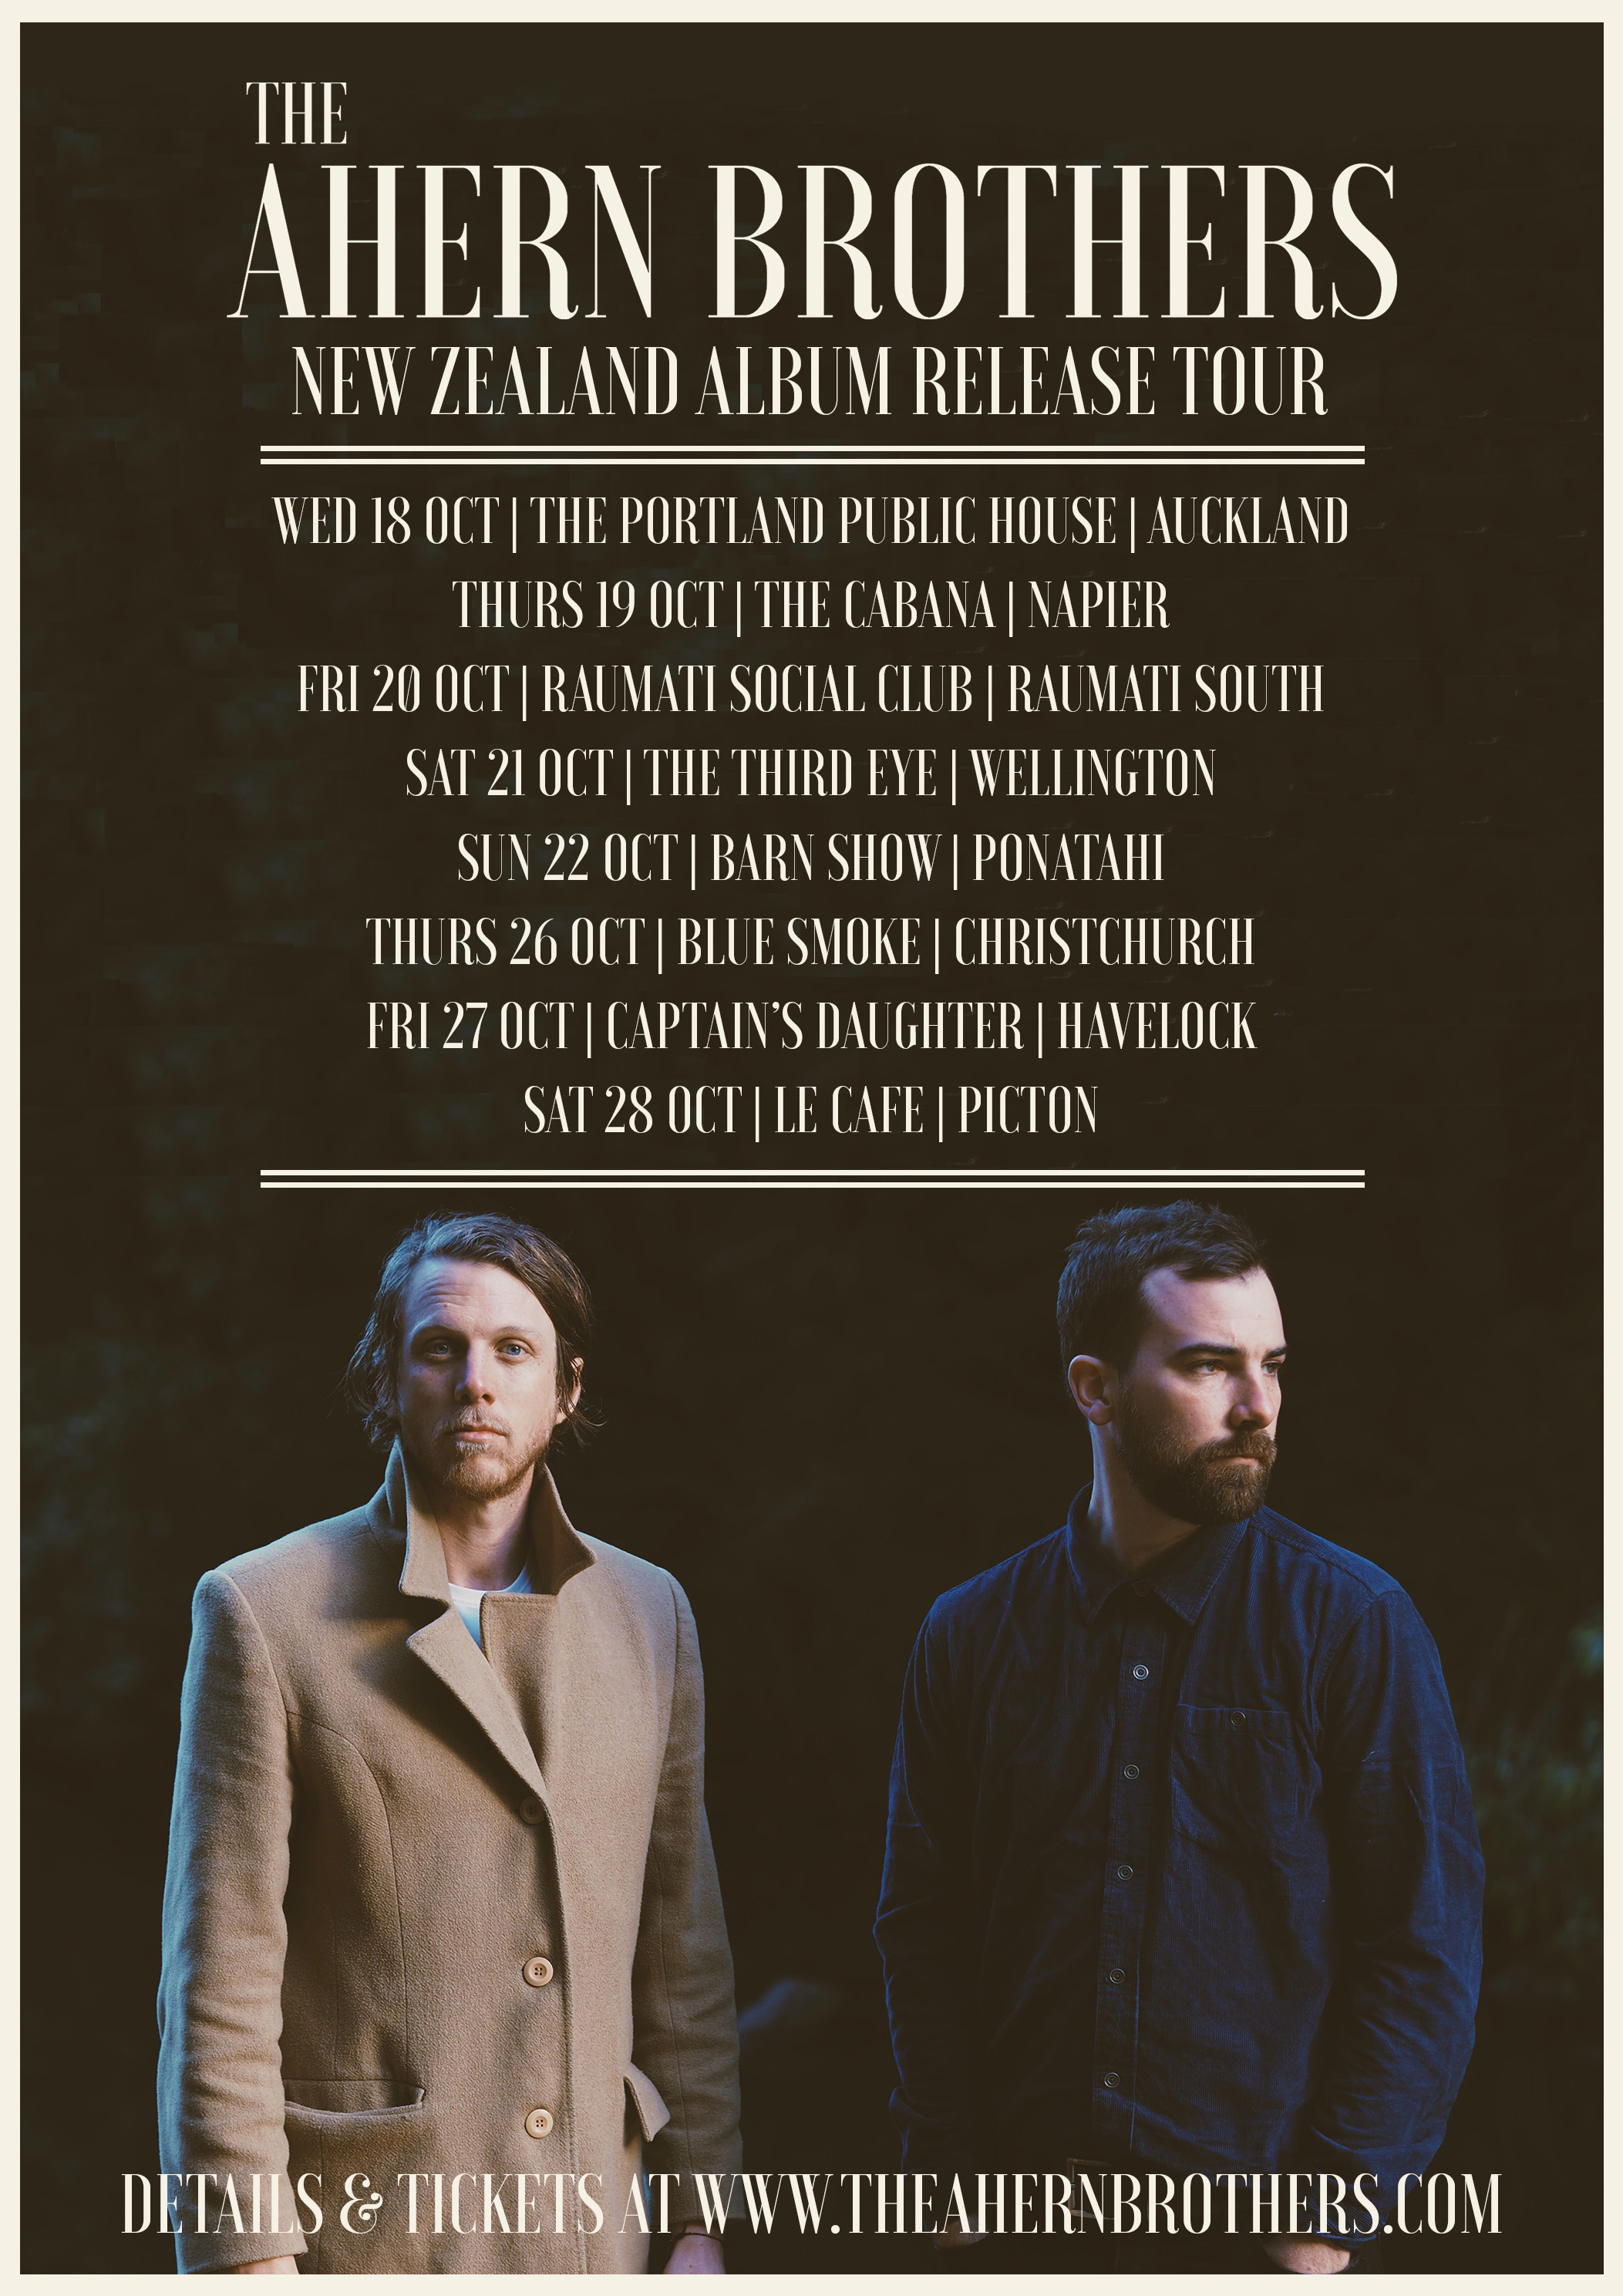 The Ahern Brothers Album Release Tour